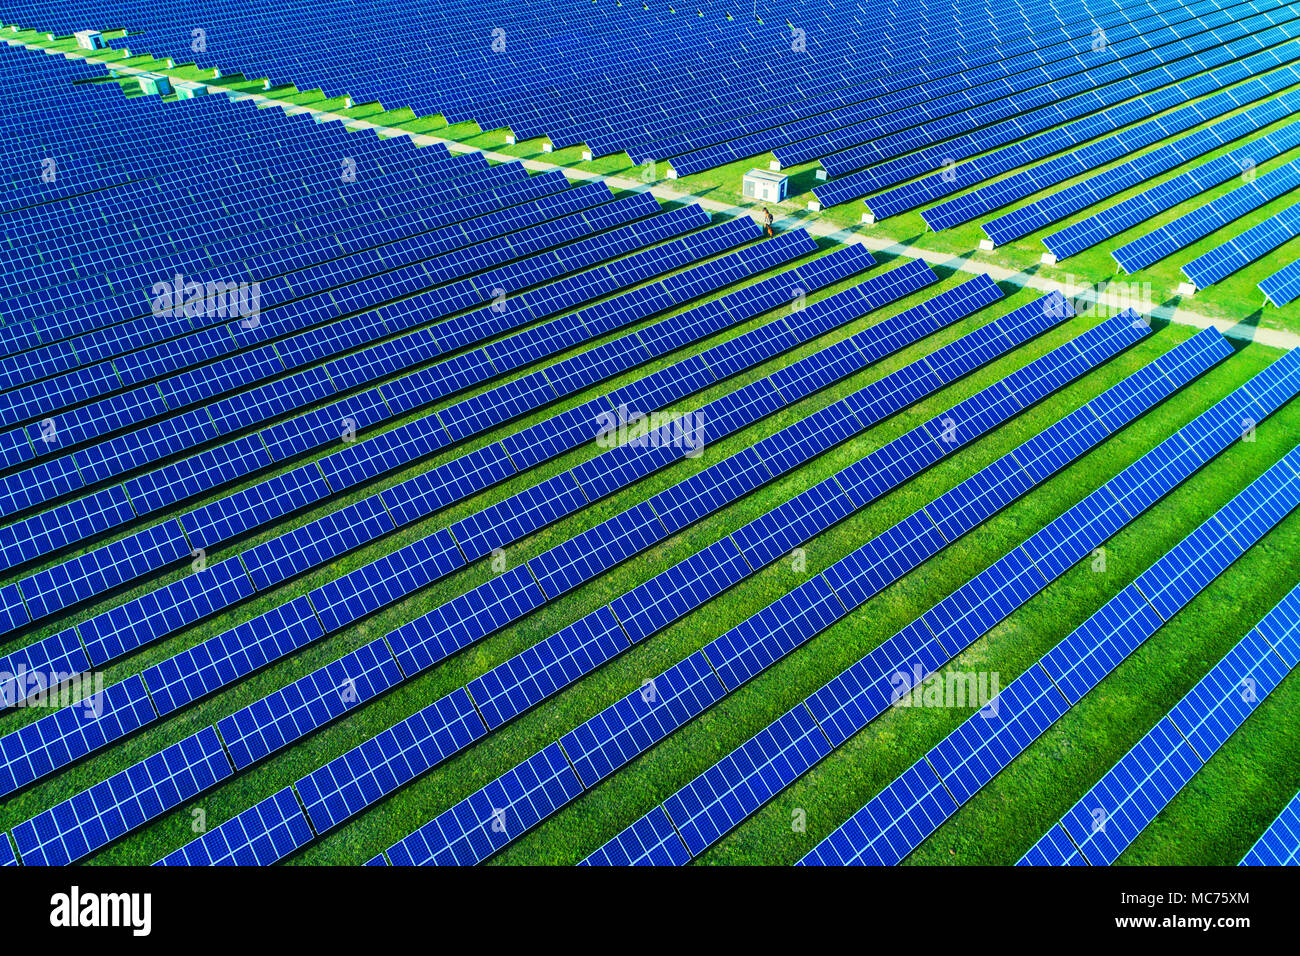 solar energy farm high angle view of solar panels on an energy farm